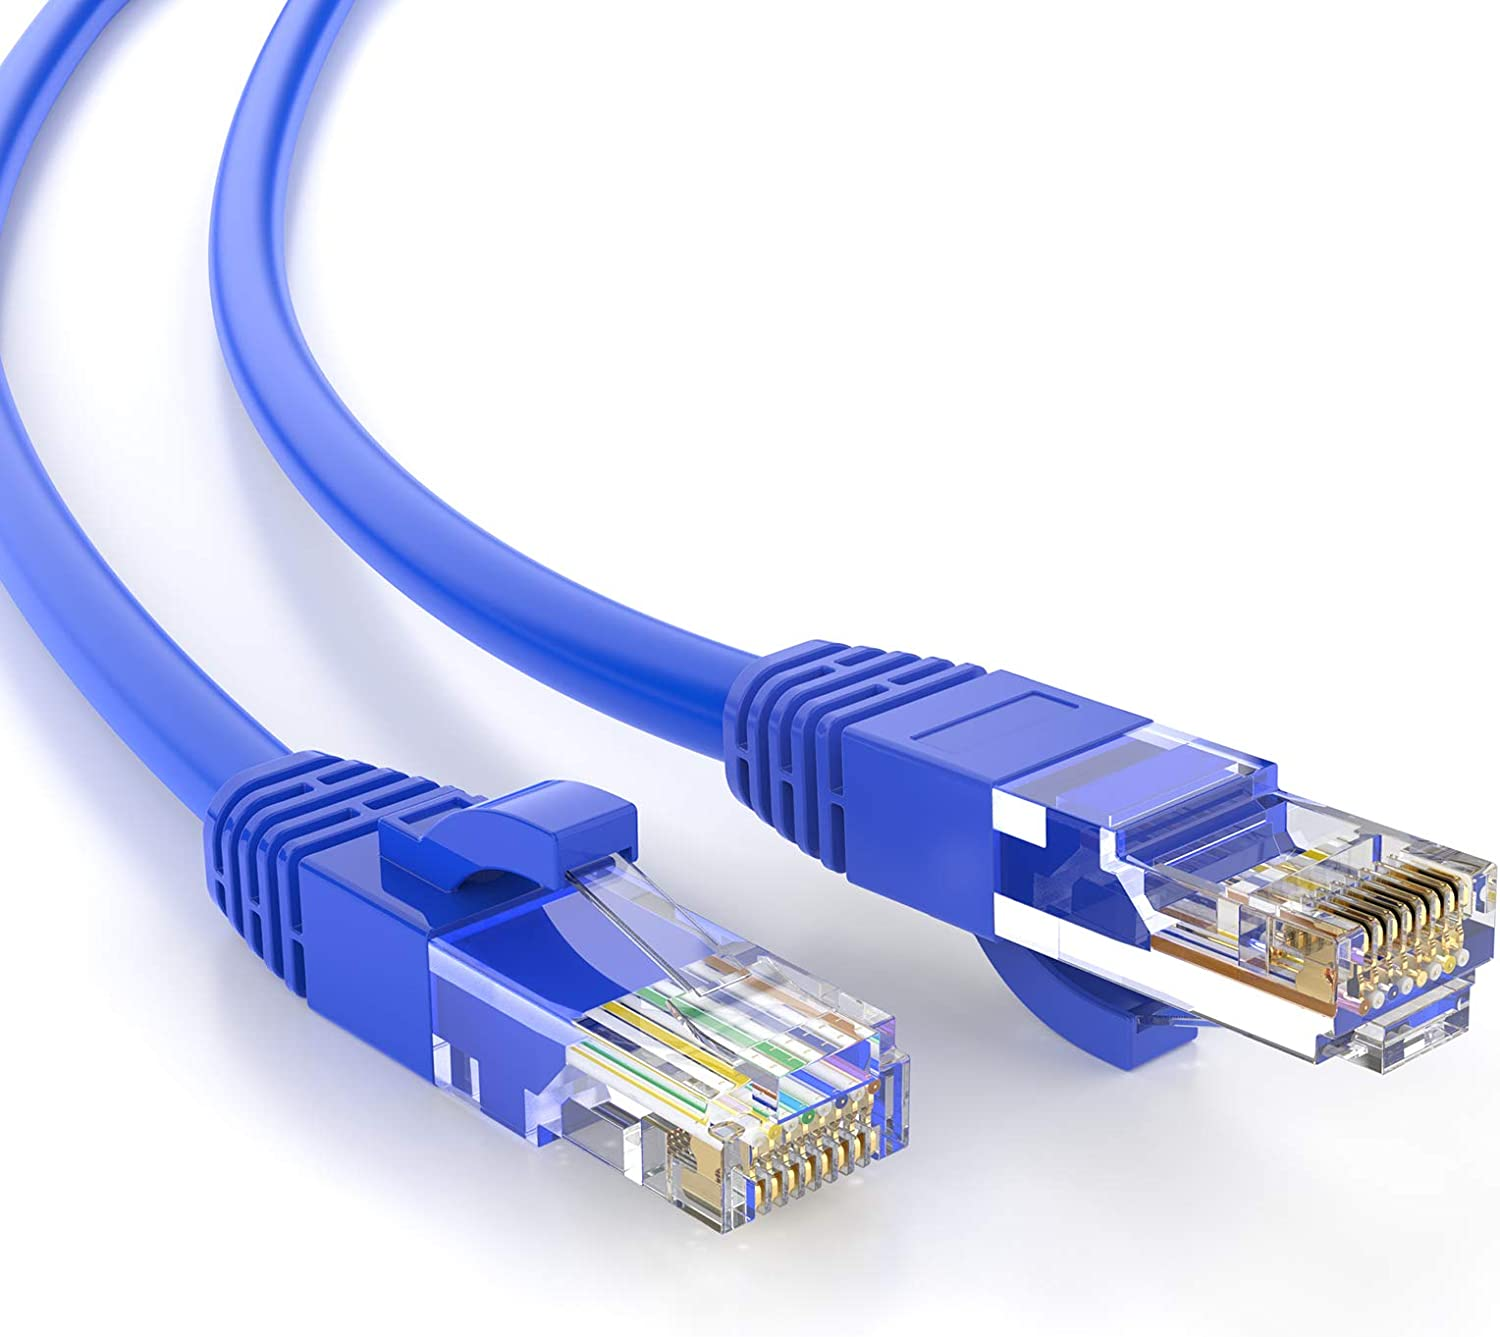 2 Cables of 5ft Cat5e 350mhz Copper Wire Ethernet Network Patch Cable Green LL43774 for use with Computers or Hubs or Switches or Patch Panels